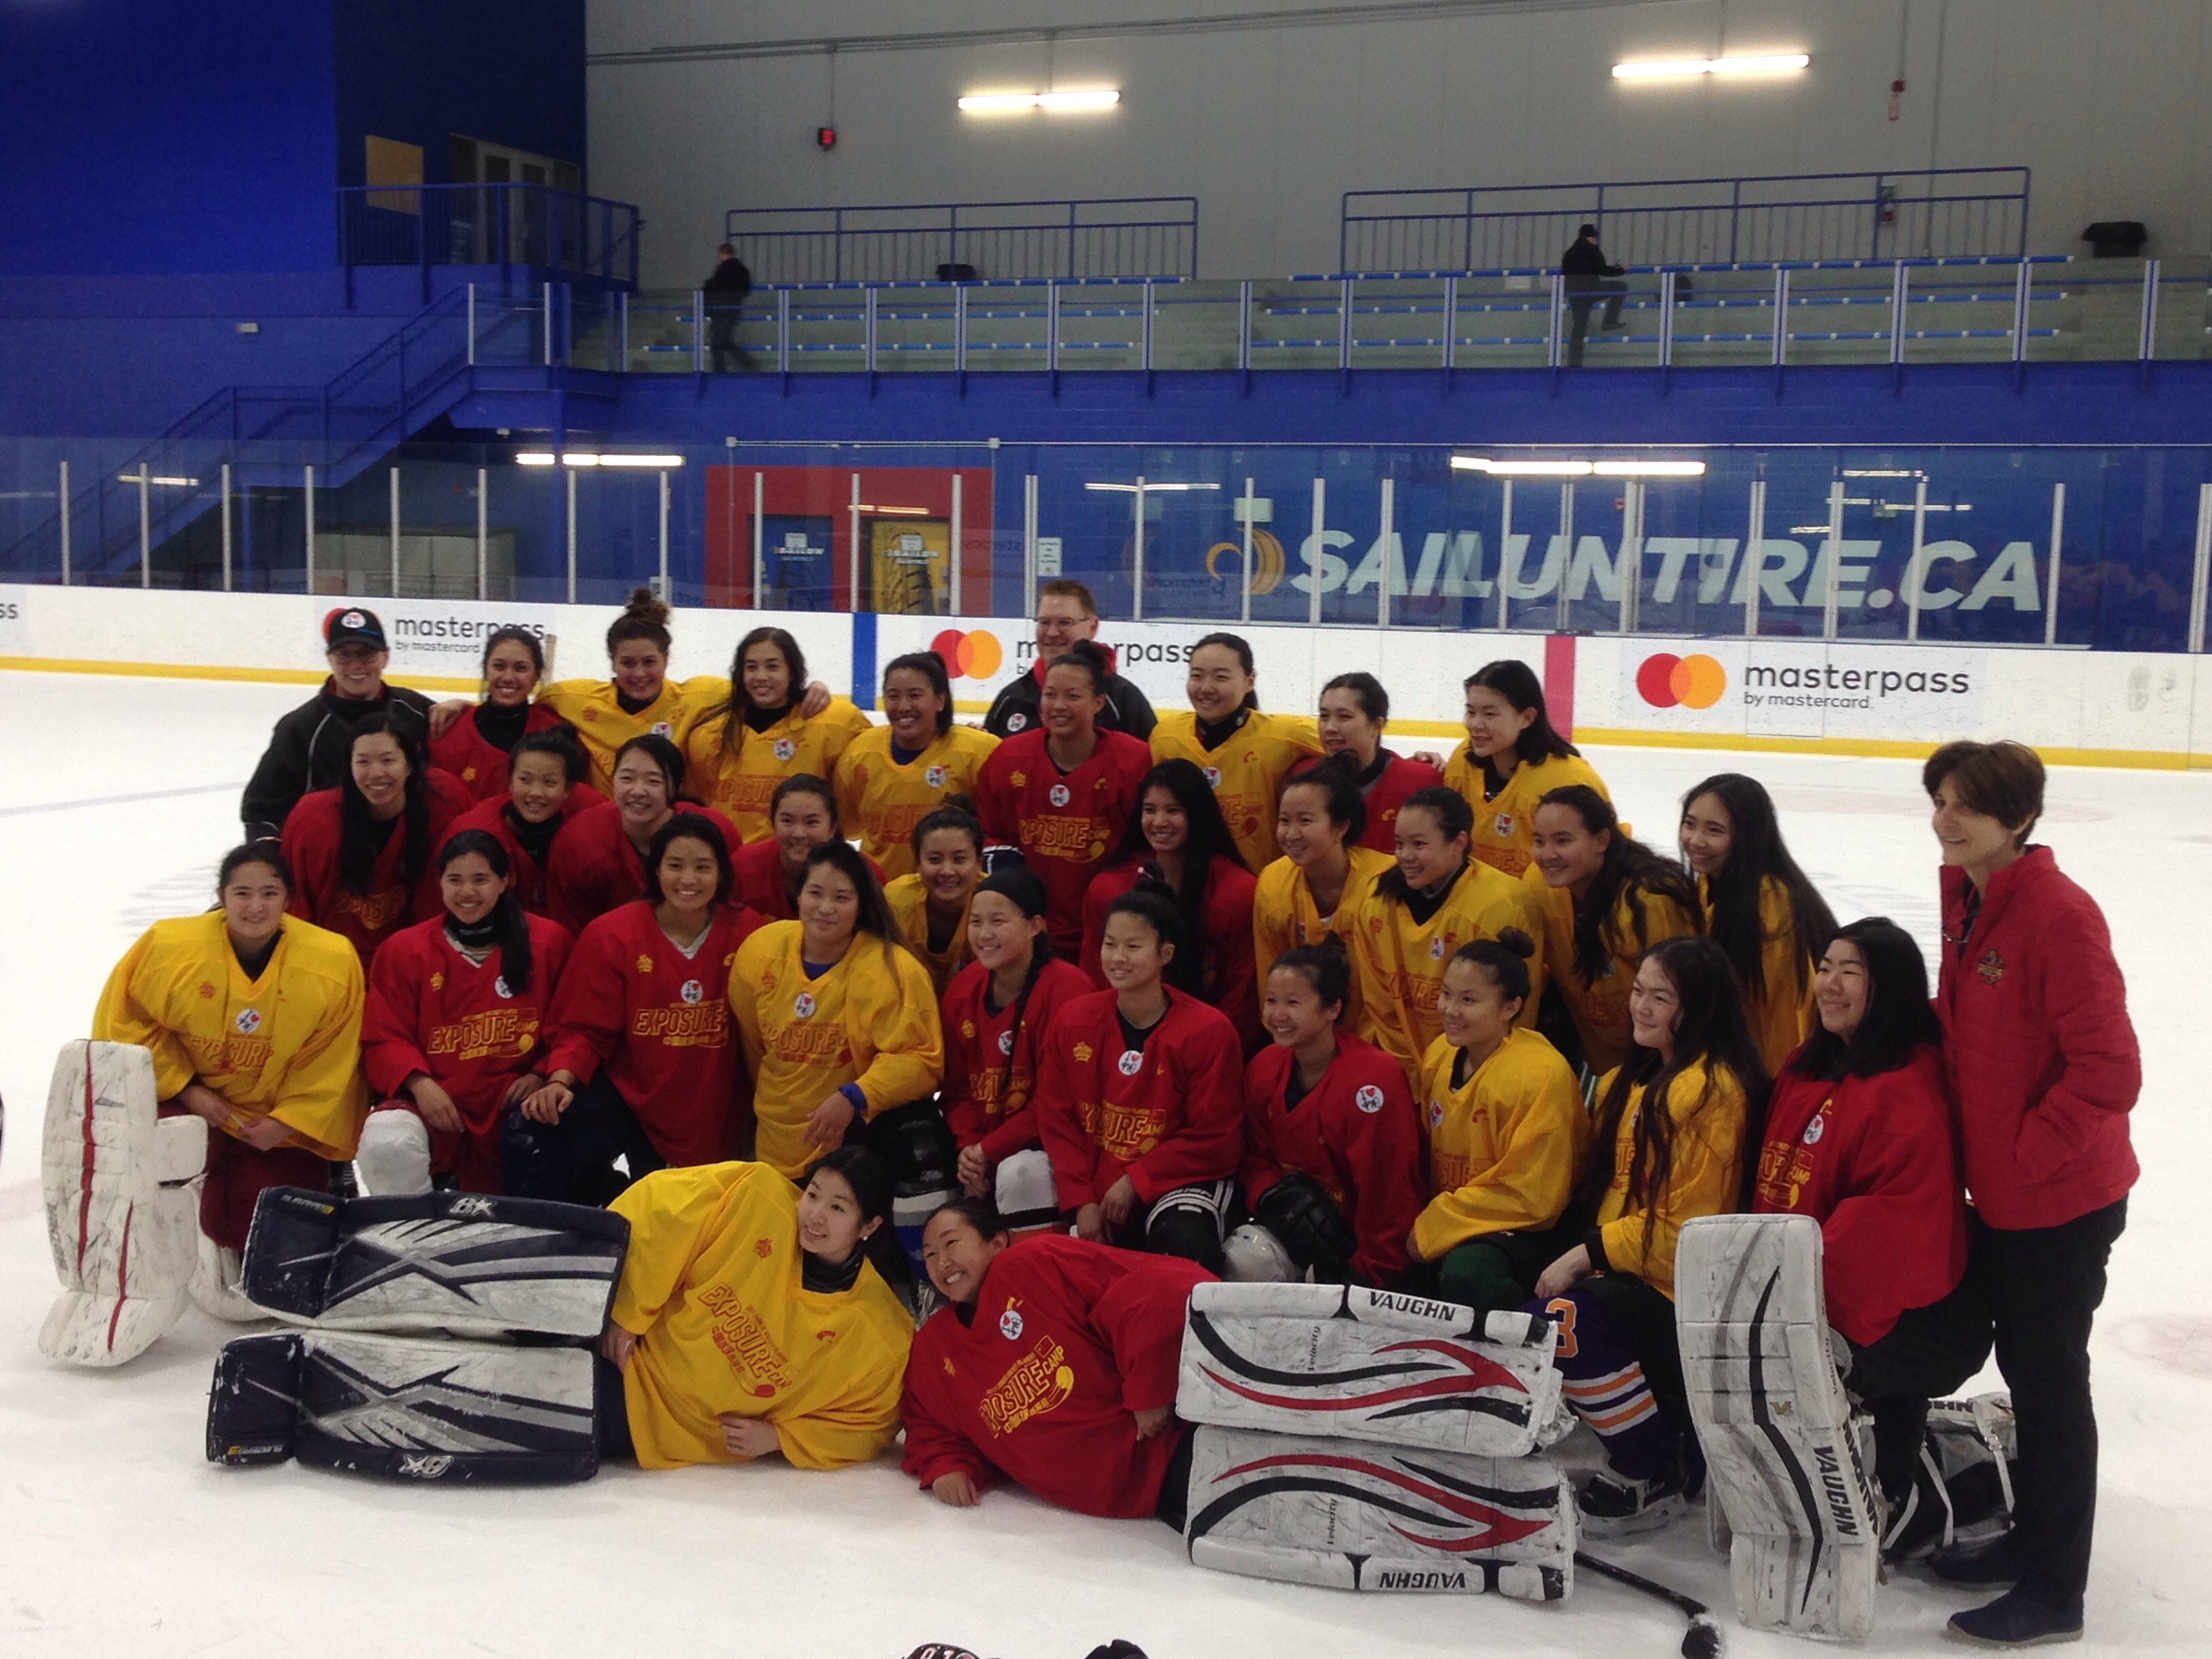 CWHL: Women - Chinese Clubs Launch 'revolutionary' Debut